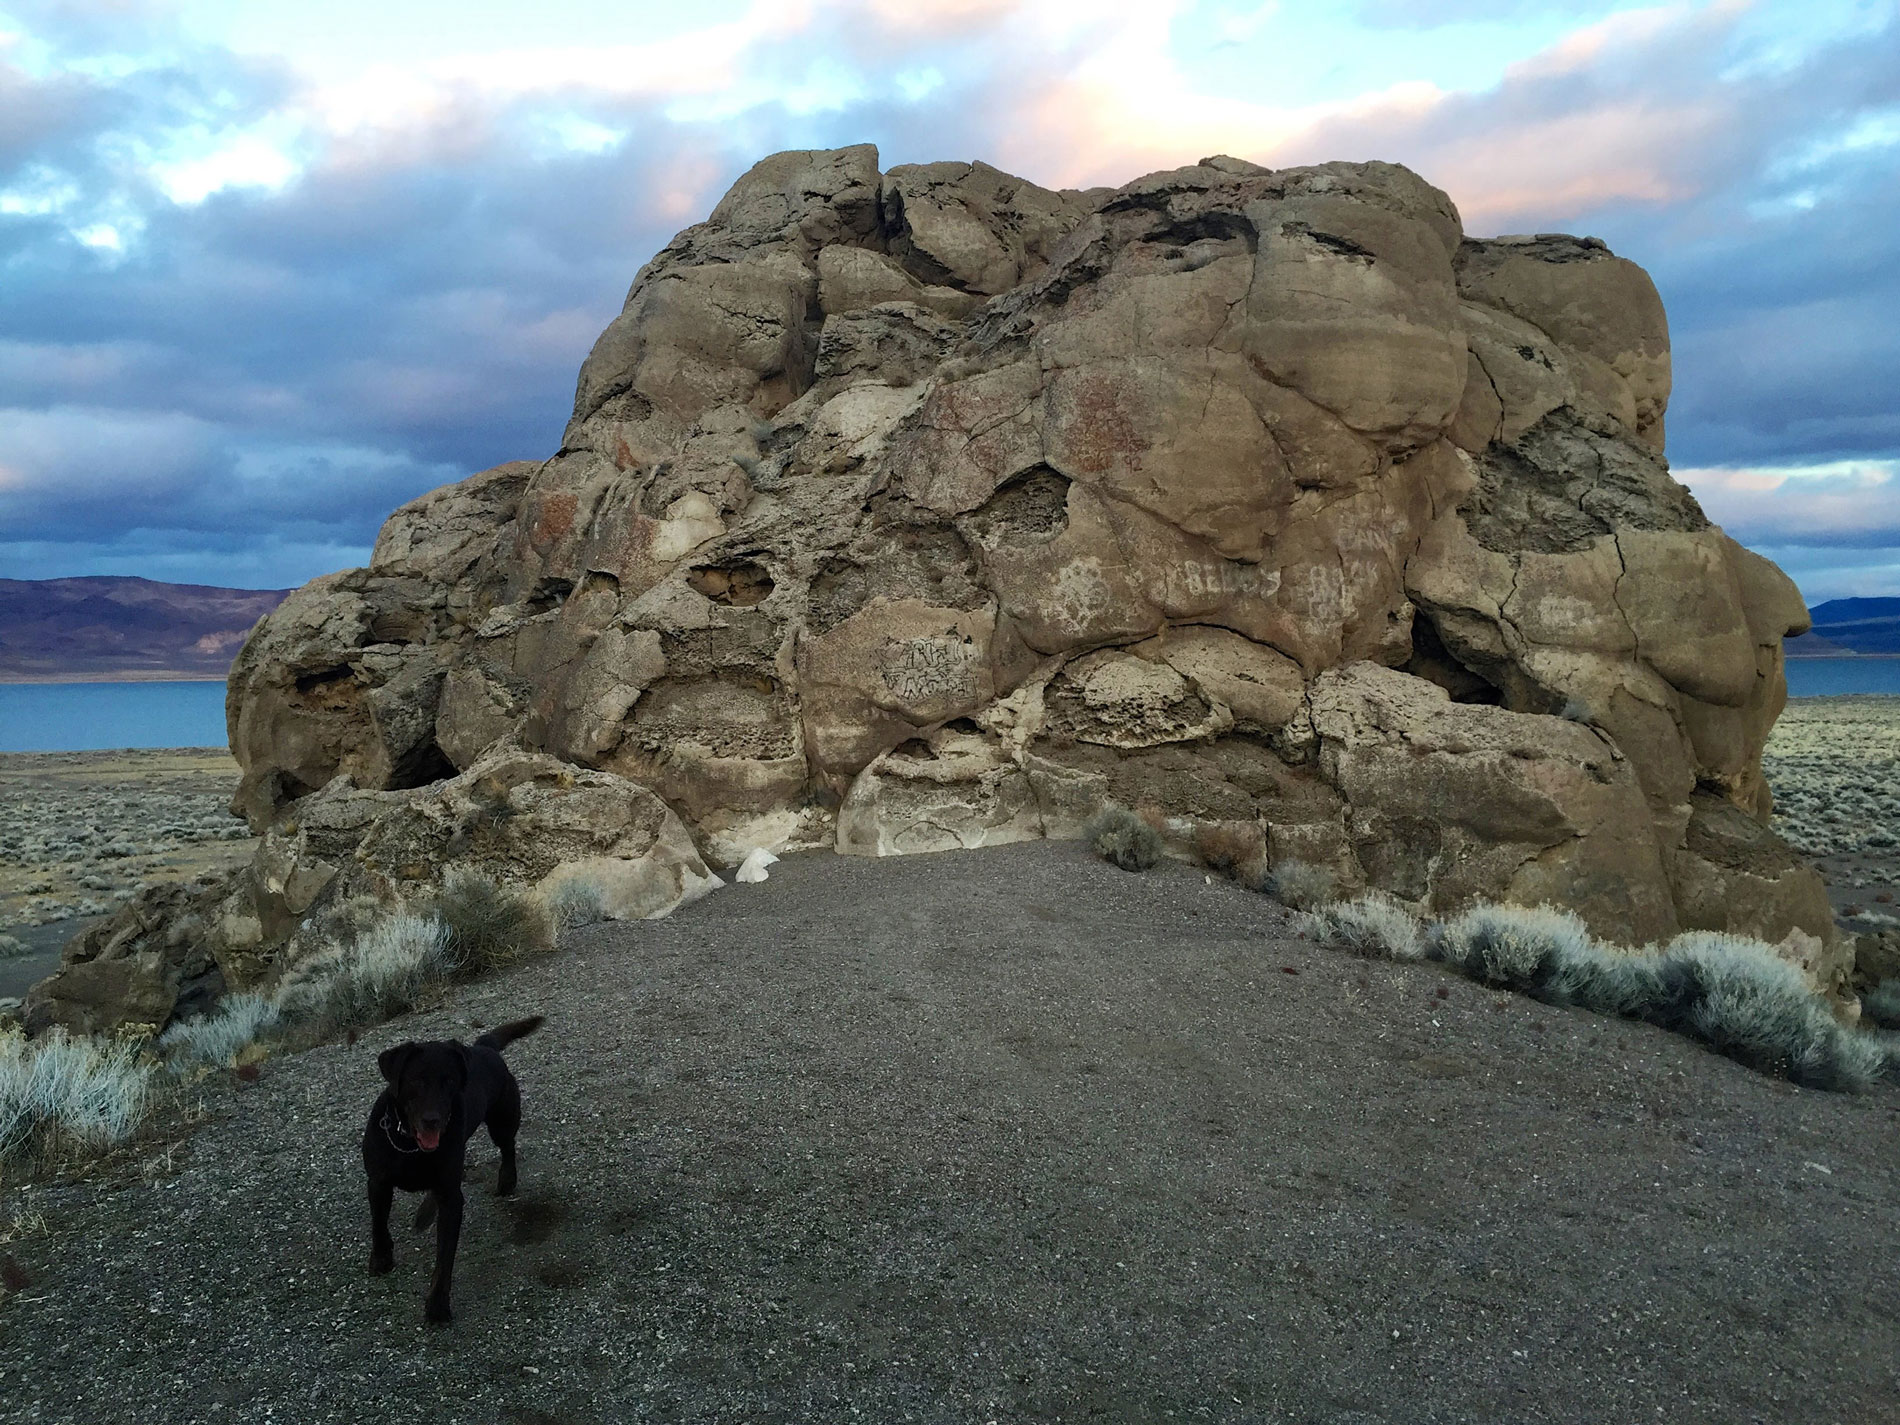 Tufa formation with Pyramid Lake in the background and my dog, Neko, in the foreground.